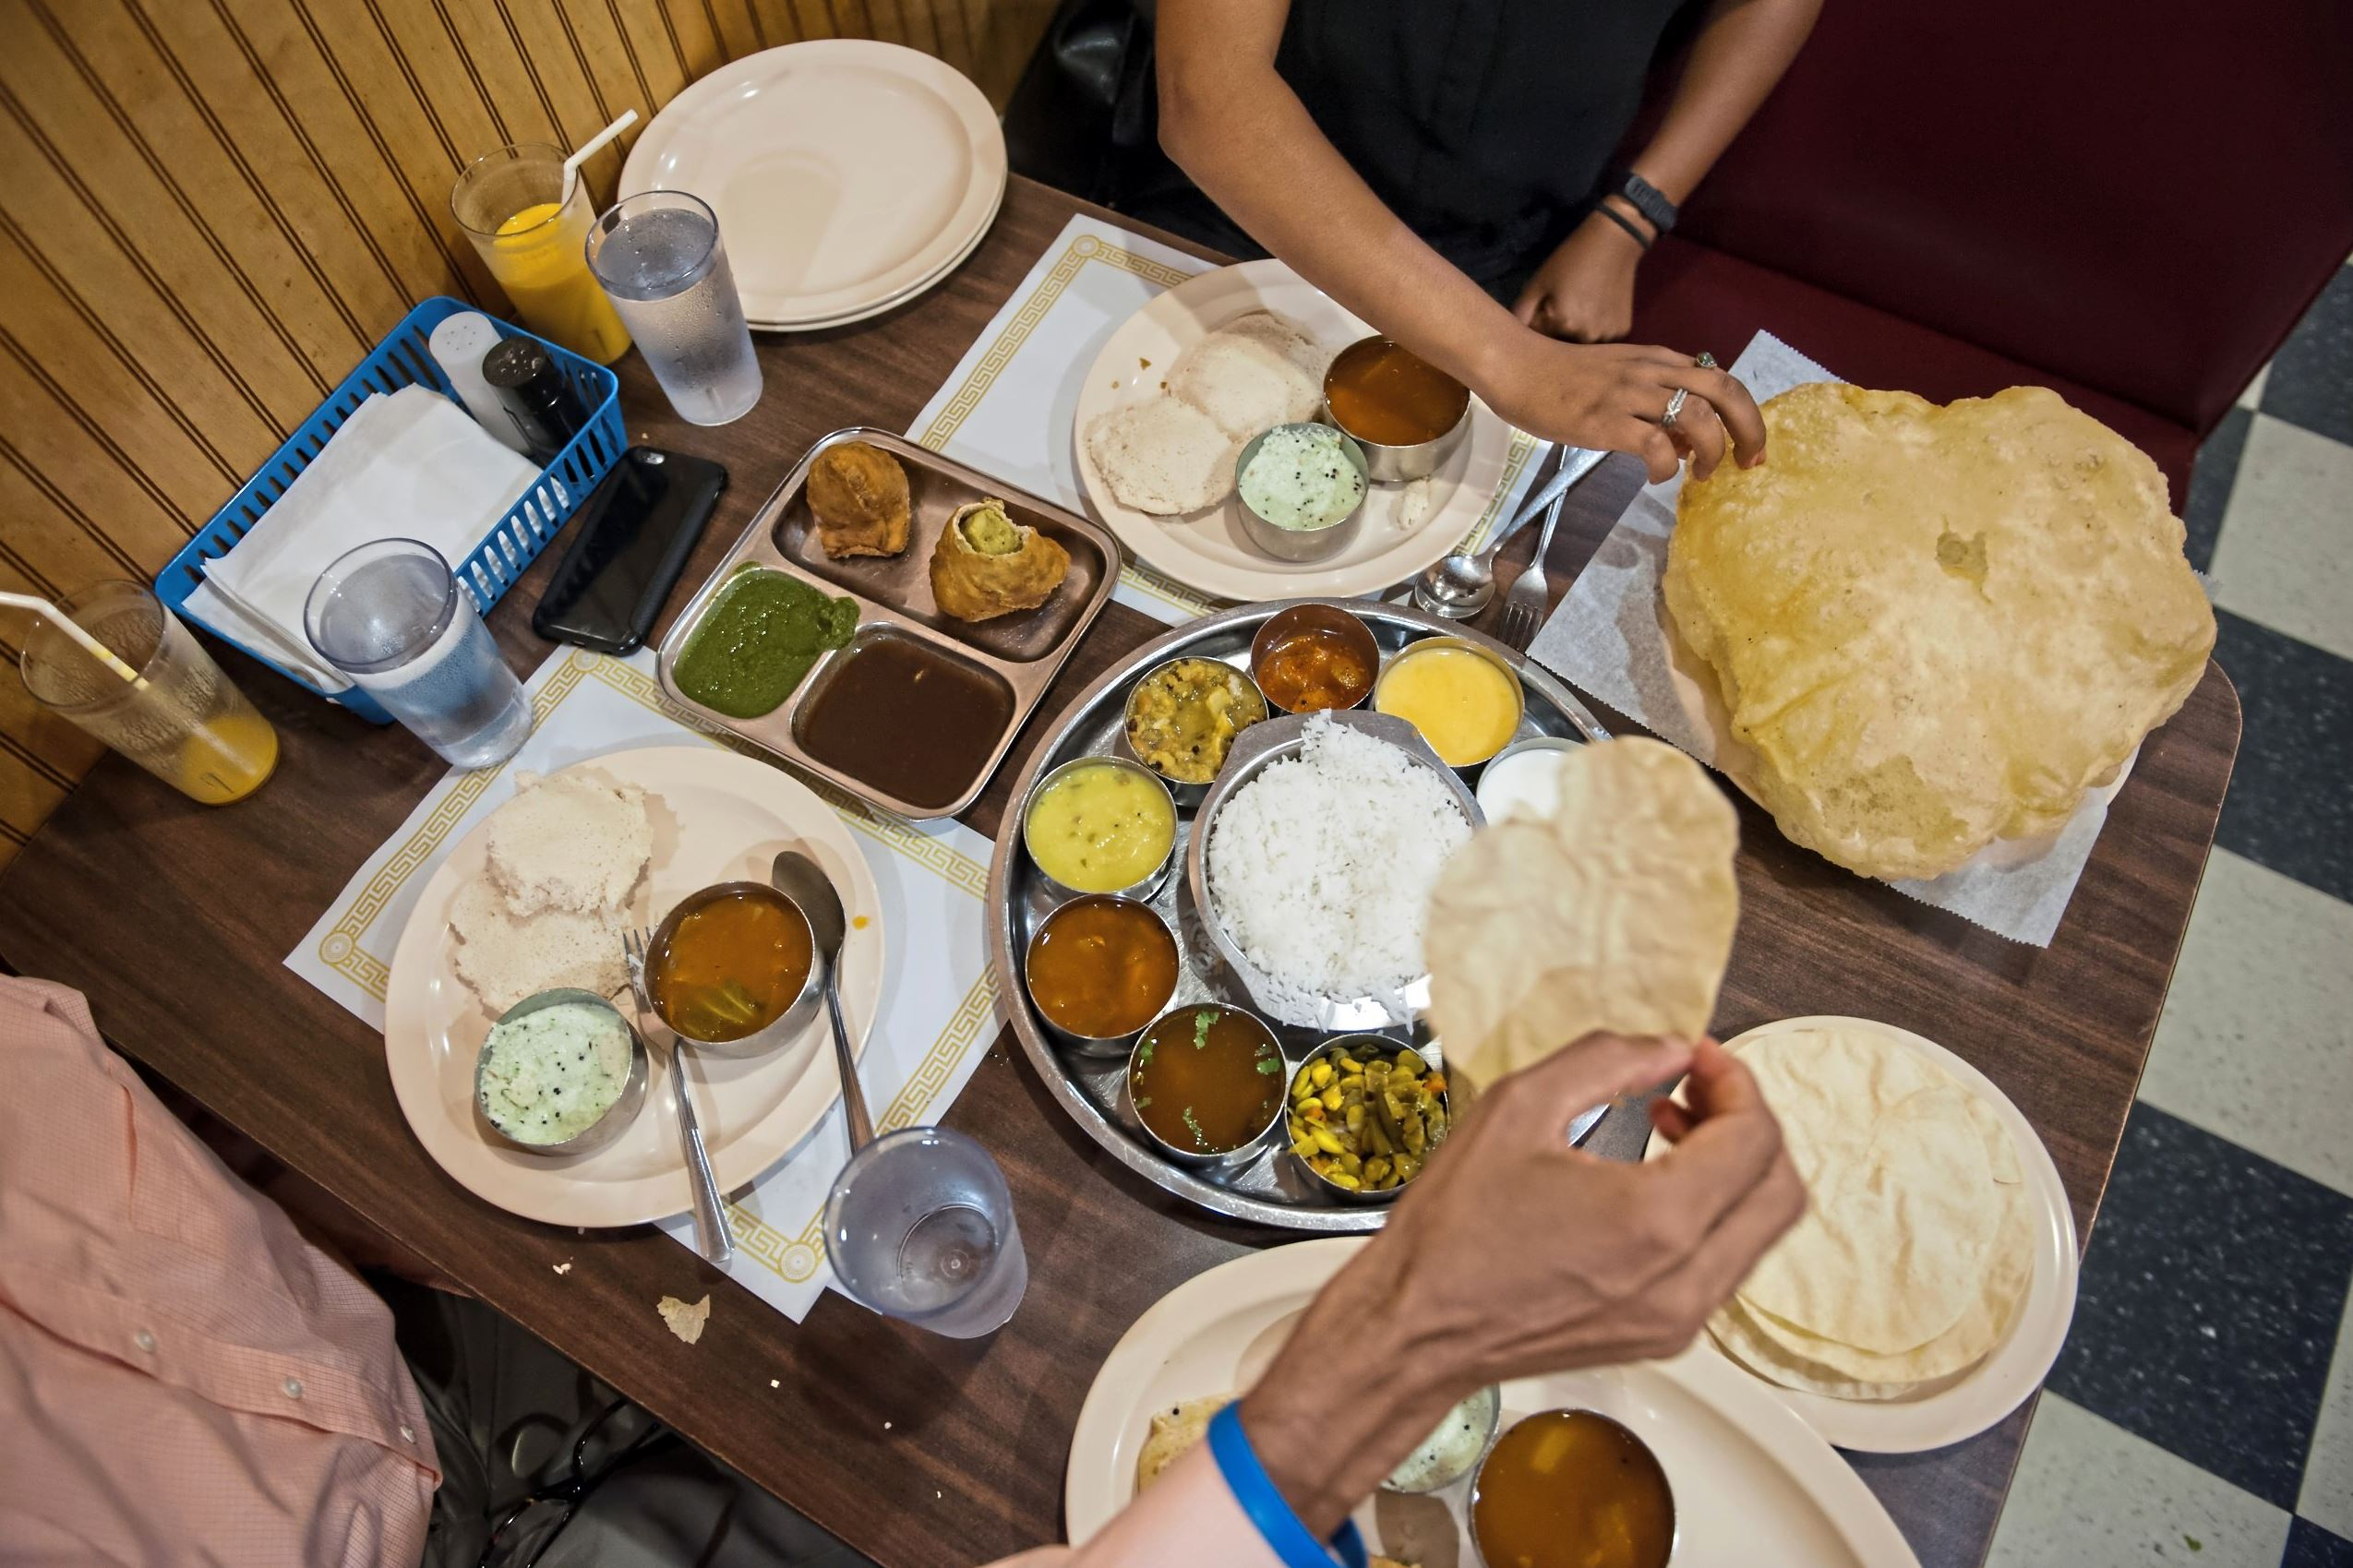 20170719smsEatWithHands03-2 Ganesh Viswanathan and Fitale Wari use their hands to eat the pappadum and bhatura at Udipi Cafe in Monroeville.